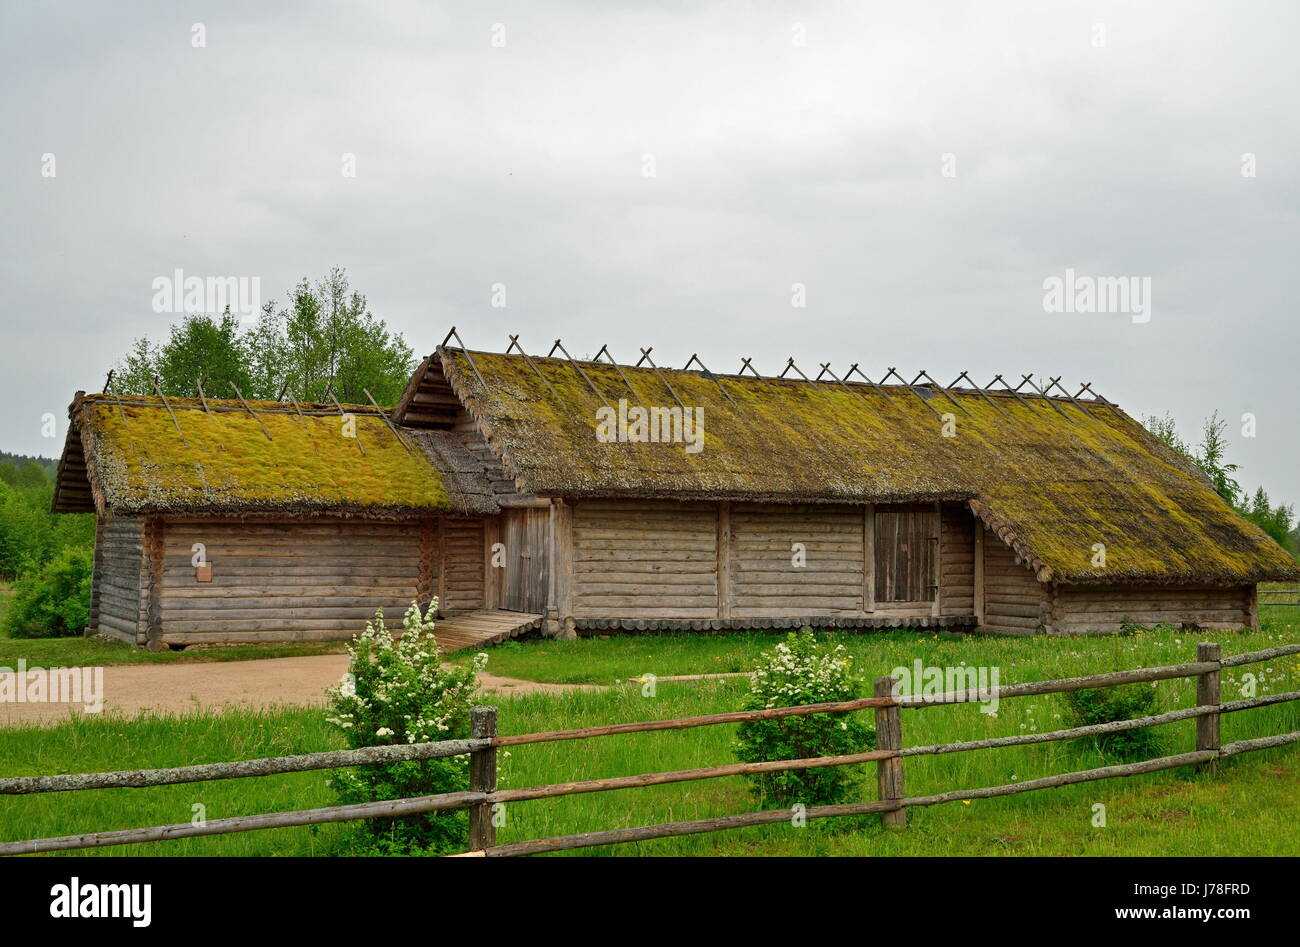 Old wooden log barn in the Museum of Pushkin Mikhailovskoe village summer cloudy day - Stock Image